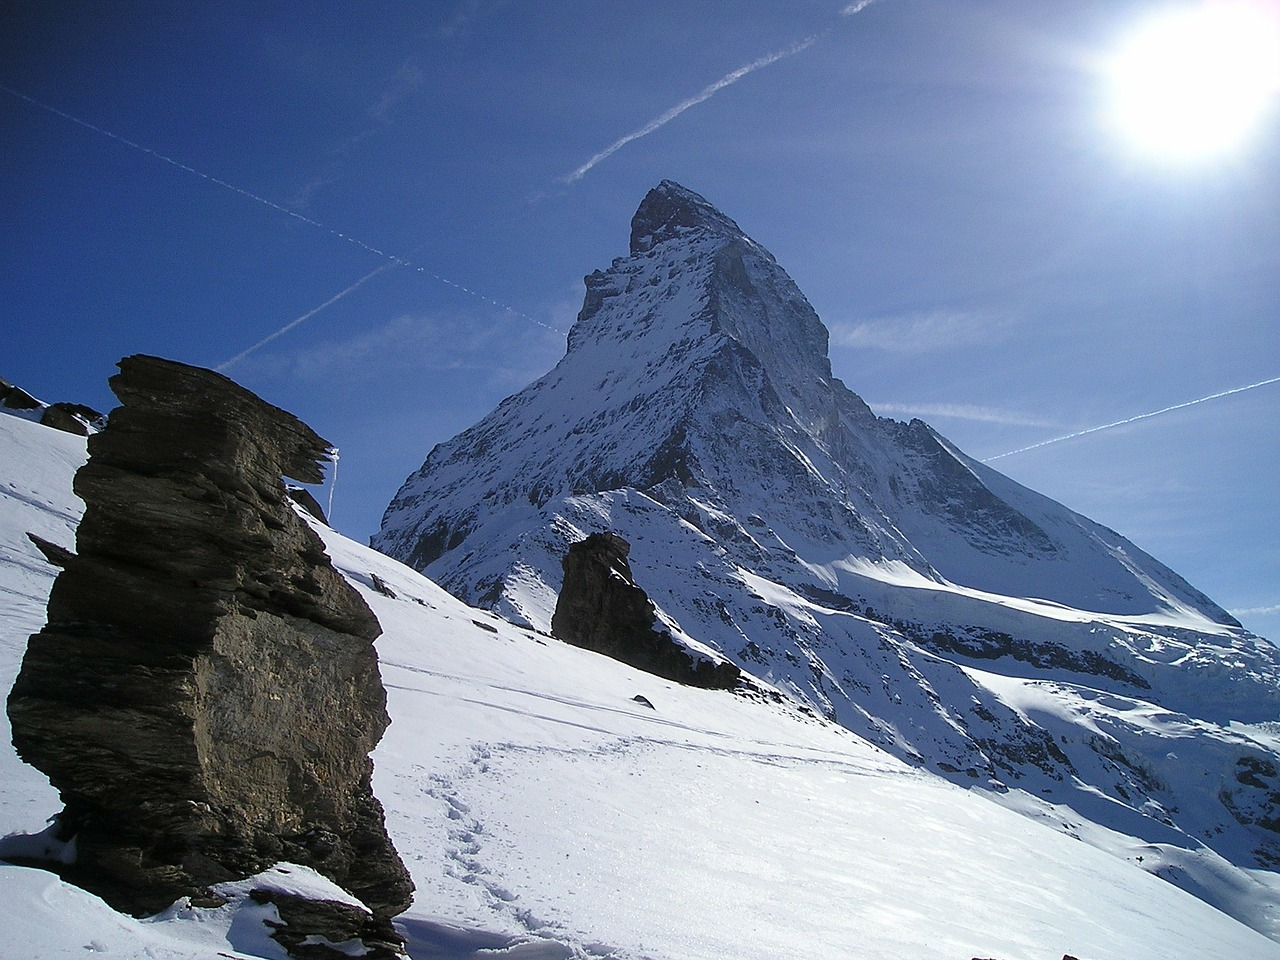 Best places to visit in Europe: Zermatt